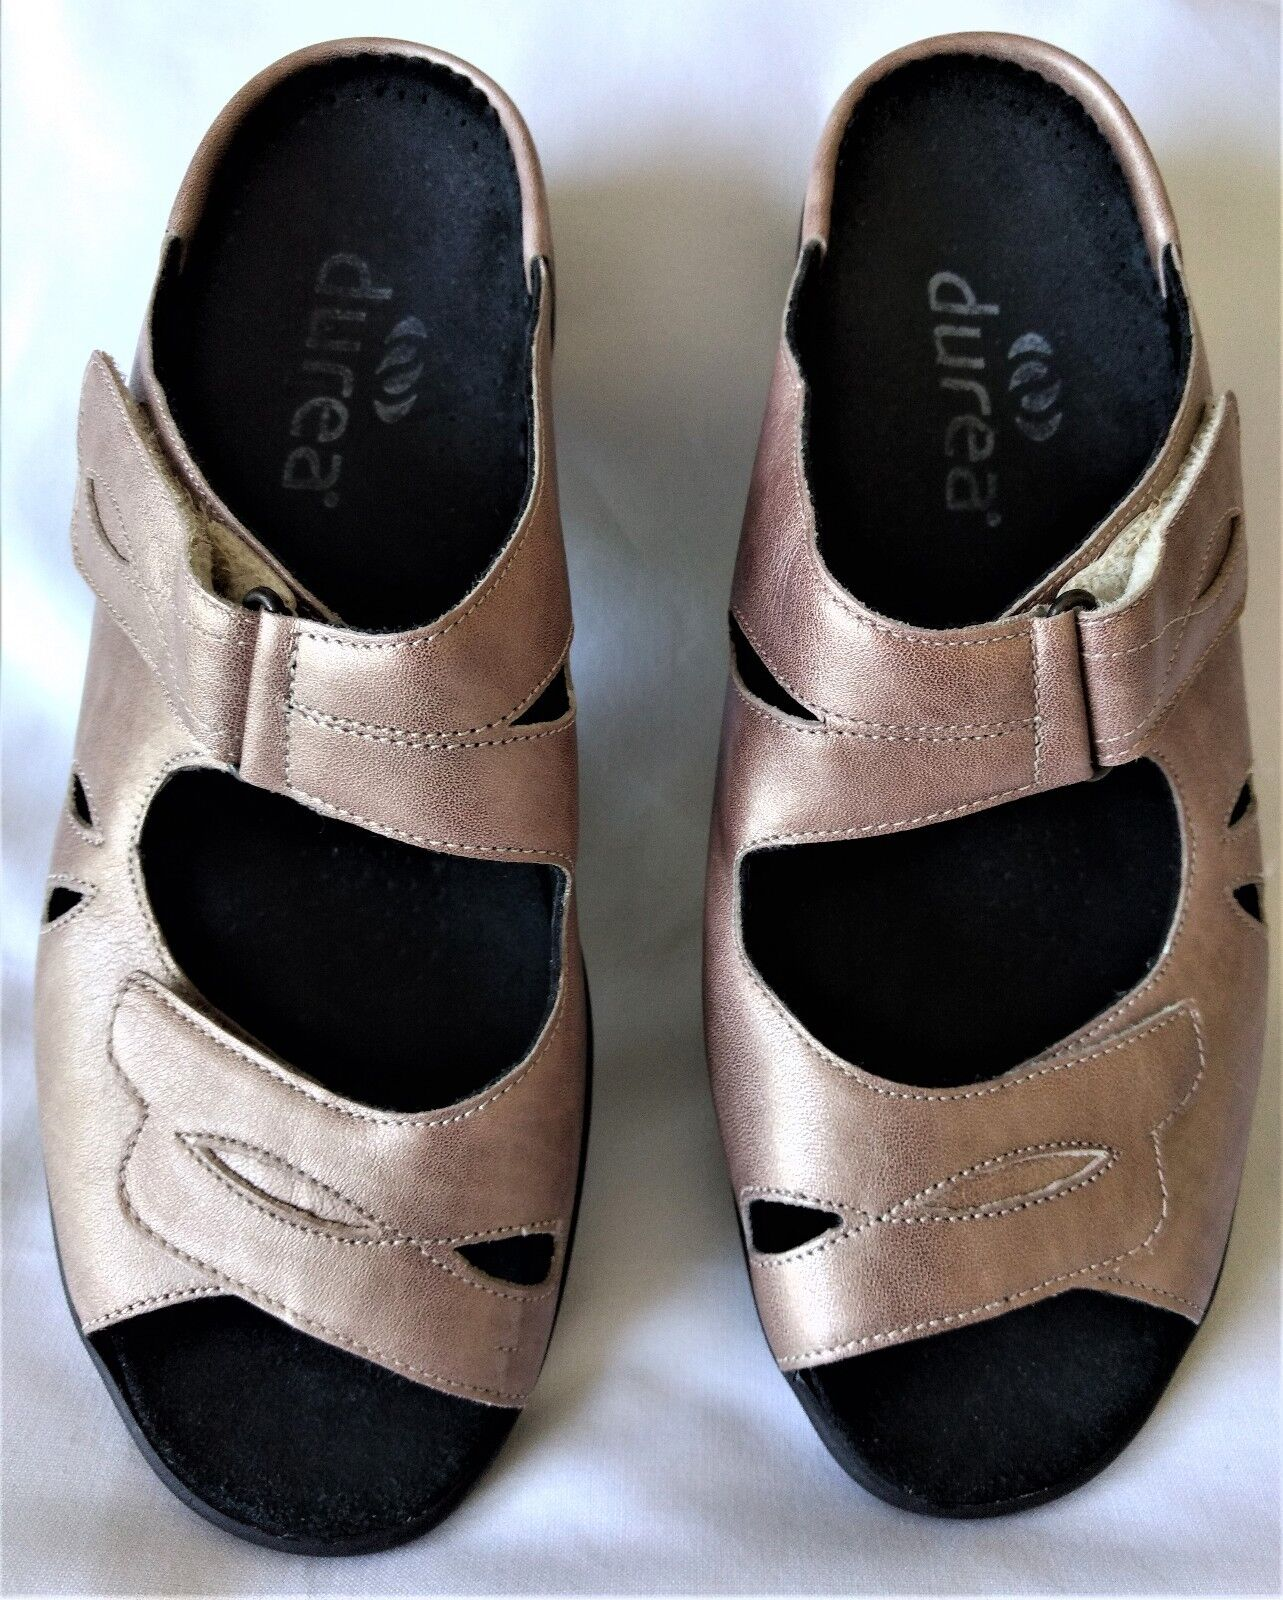 NWOB gold Women's Leather Durea Kristy Sandals Slides Size 6 1 2